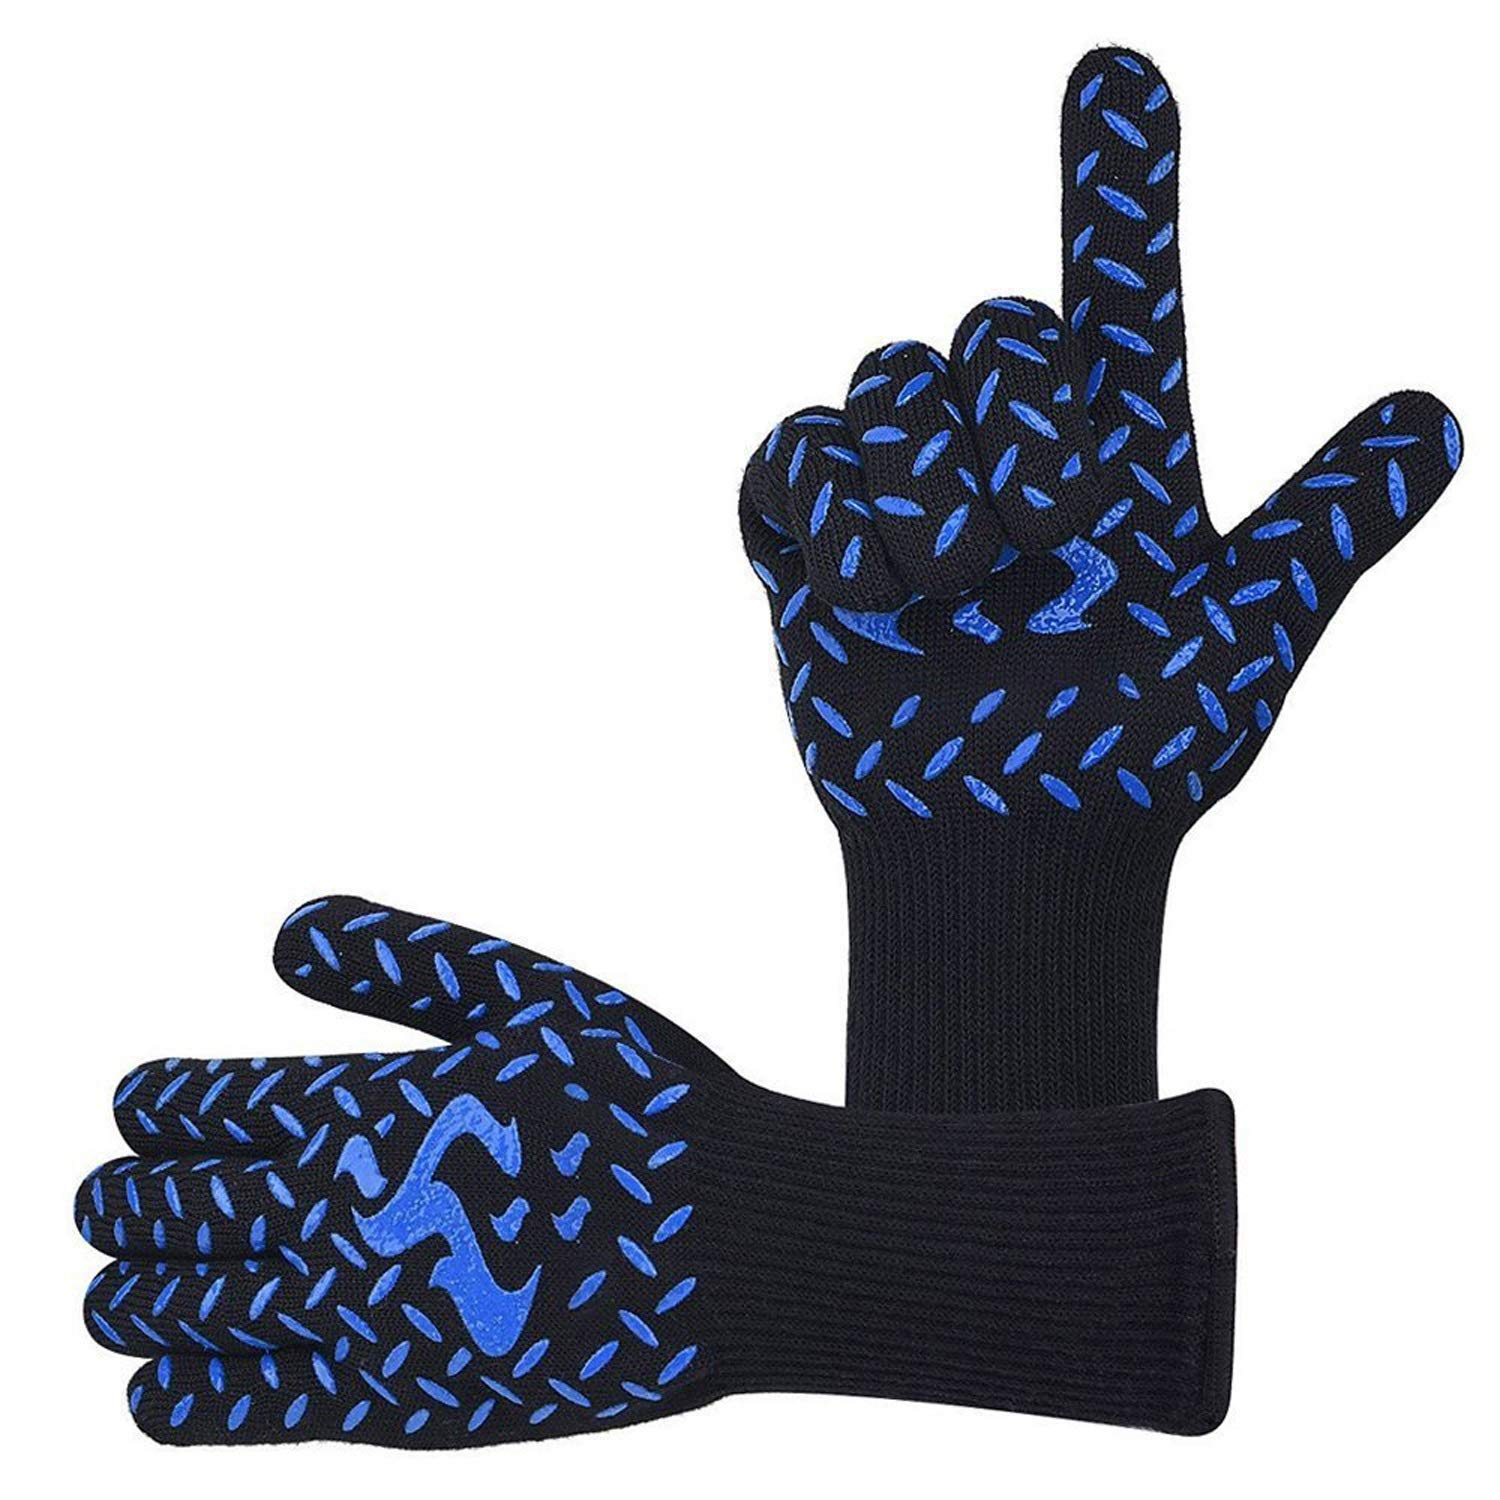 LIN-rlp Grilling Gloves Heat Resistant Oven Gloves, BBQ Gloves Heat Resistant Up to with Certified for BBQ, Grill, Cooking, Baking, Welding, (1 Pair) by LIN-rlp